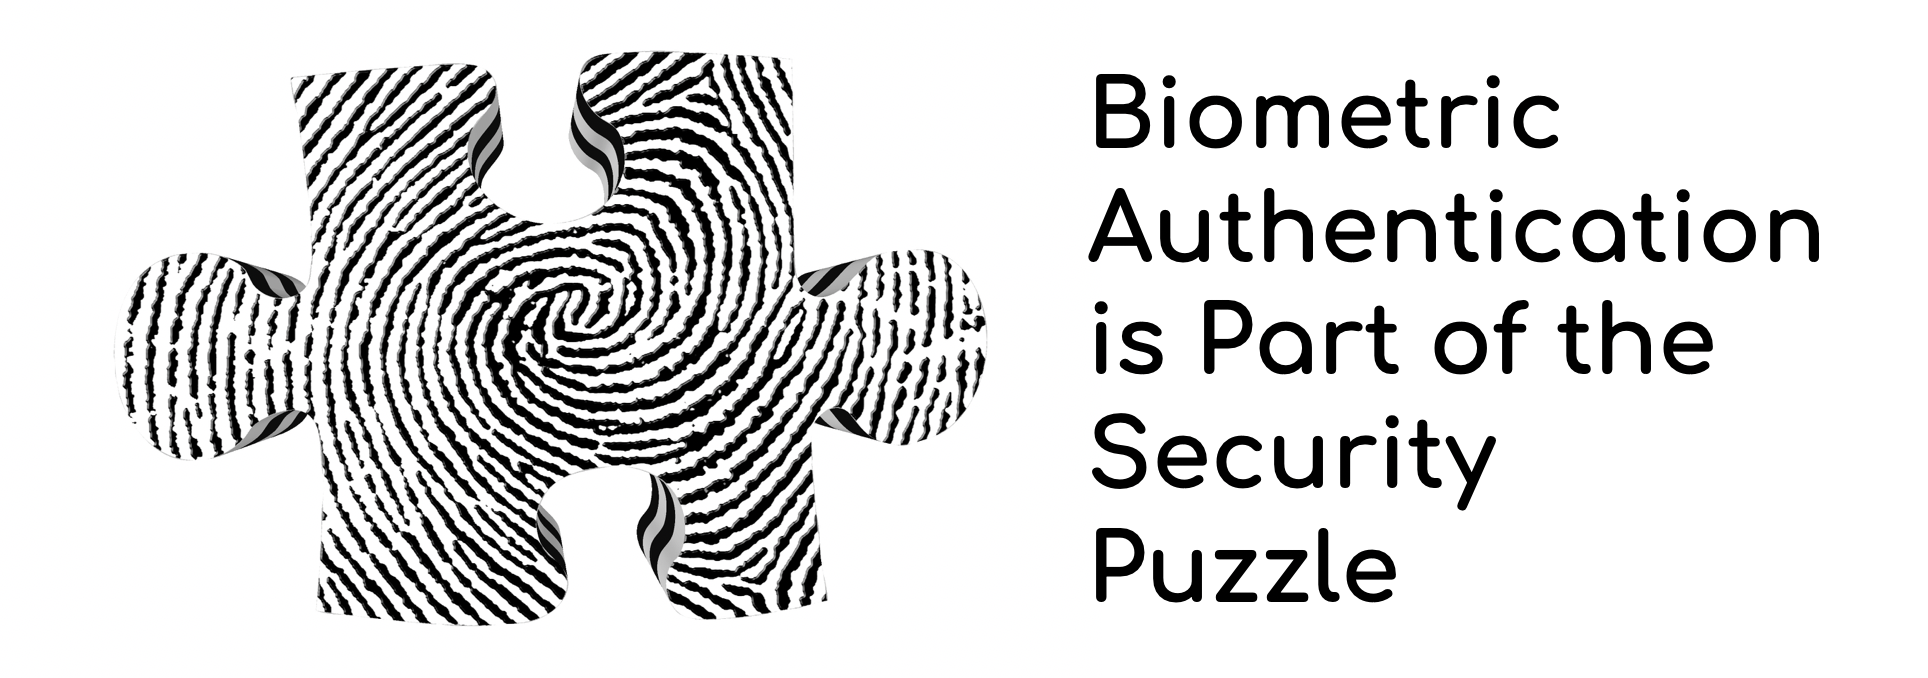 Biometric Authentication is Part of the Security Puzzle: https://www.enzoic.com/biometric-authentication-security-puzzle/